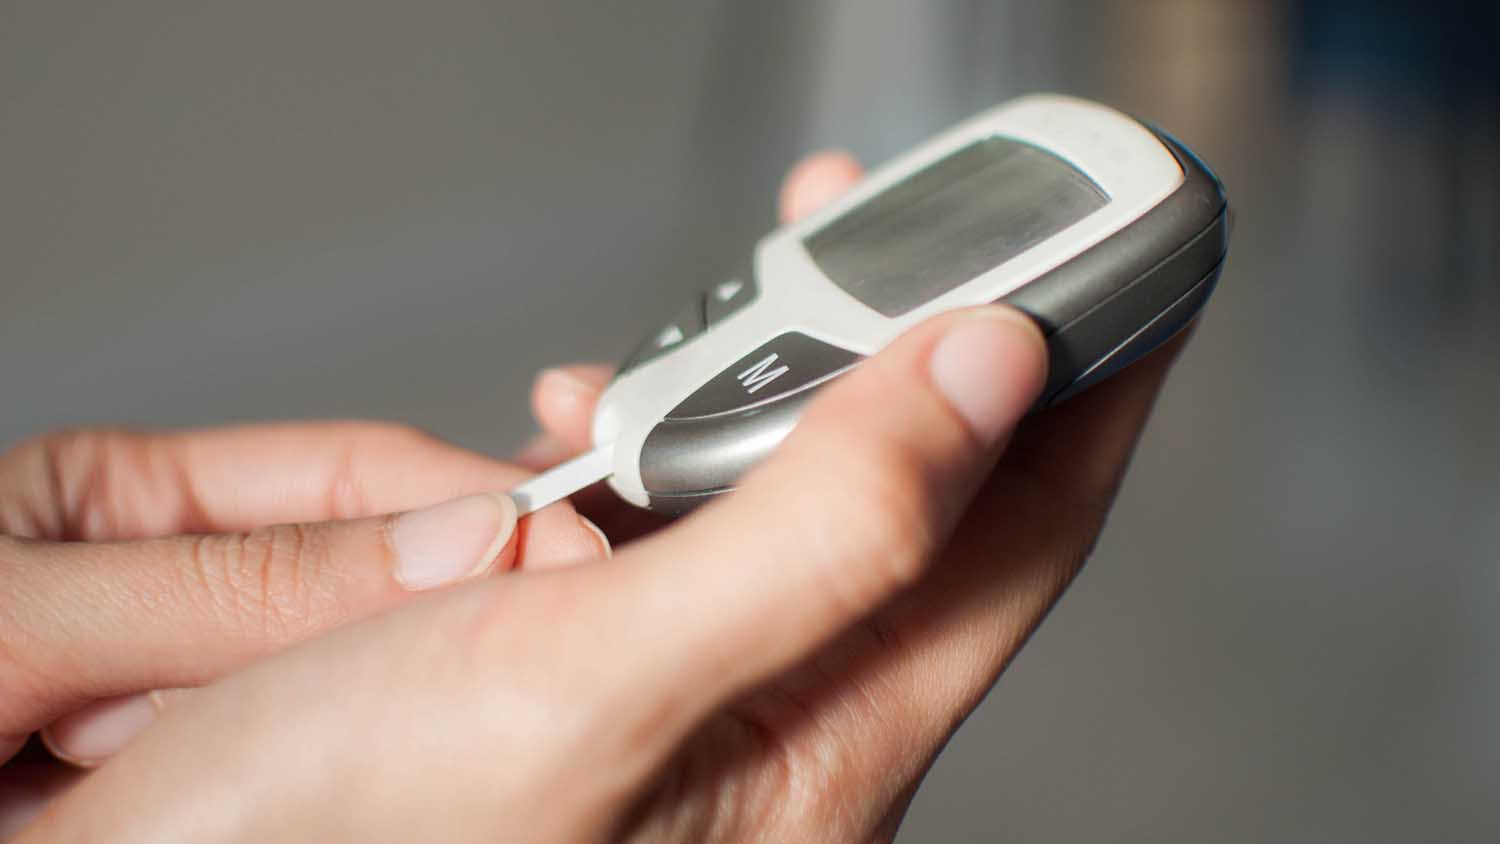 3 Ways Getting Your Blood Sugar Under Control Can Help Protect Against COVID-19